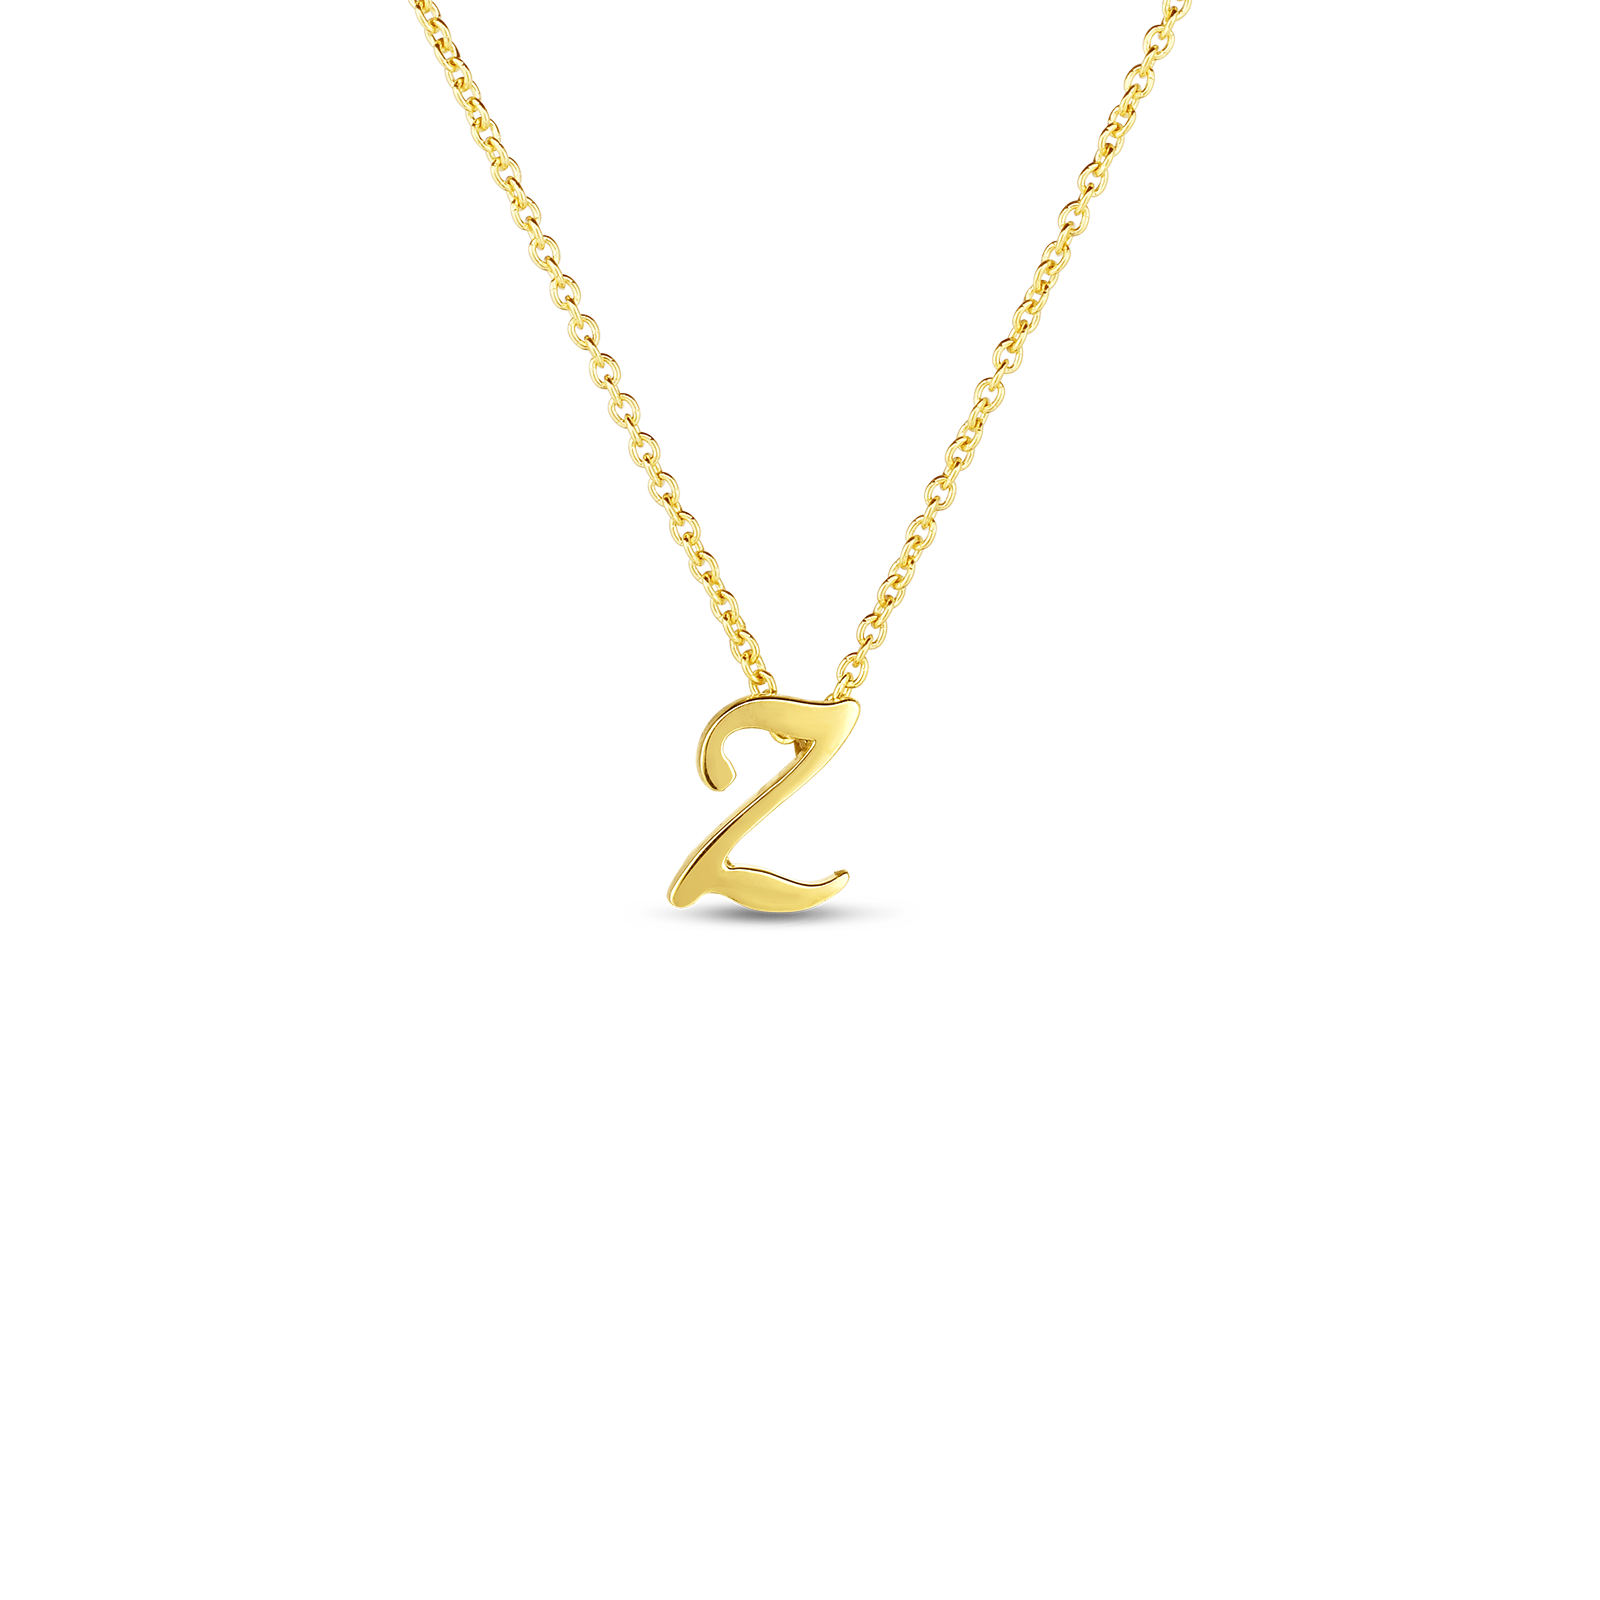 18k Small Script Initial 'Z' Pendant On Chain